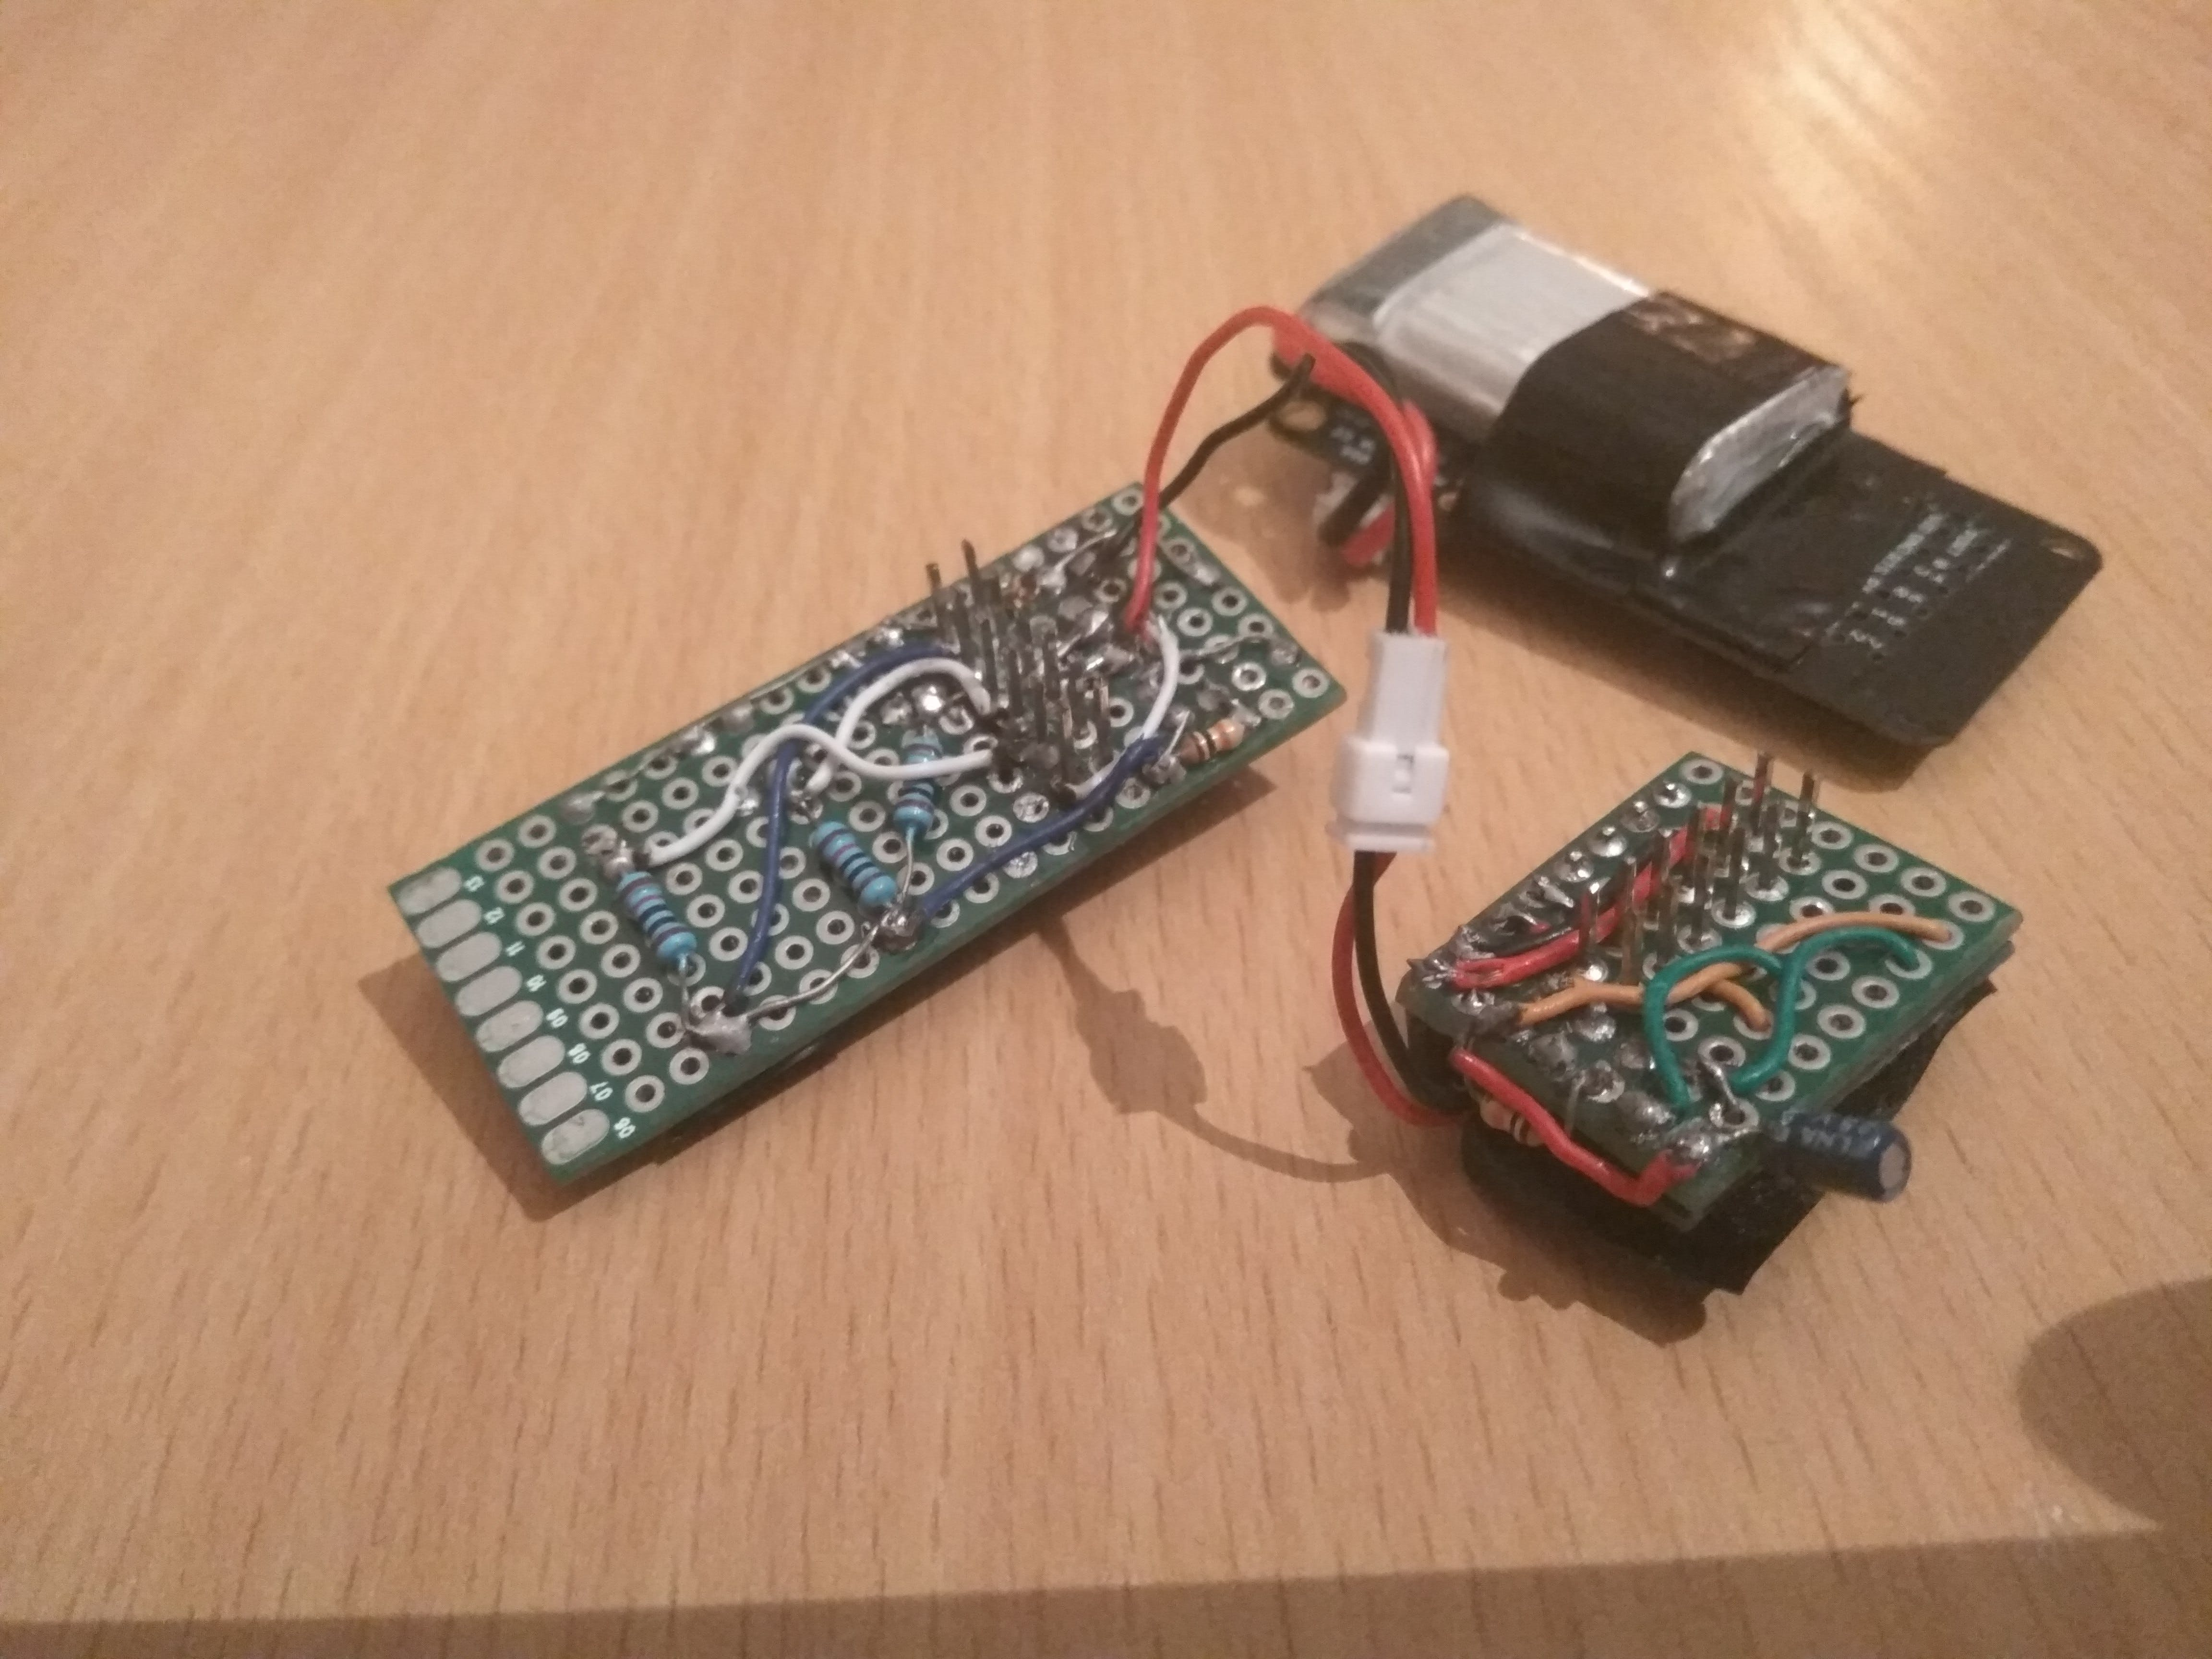 Common I2C connection of the shields